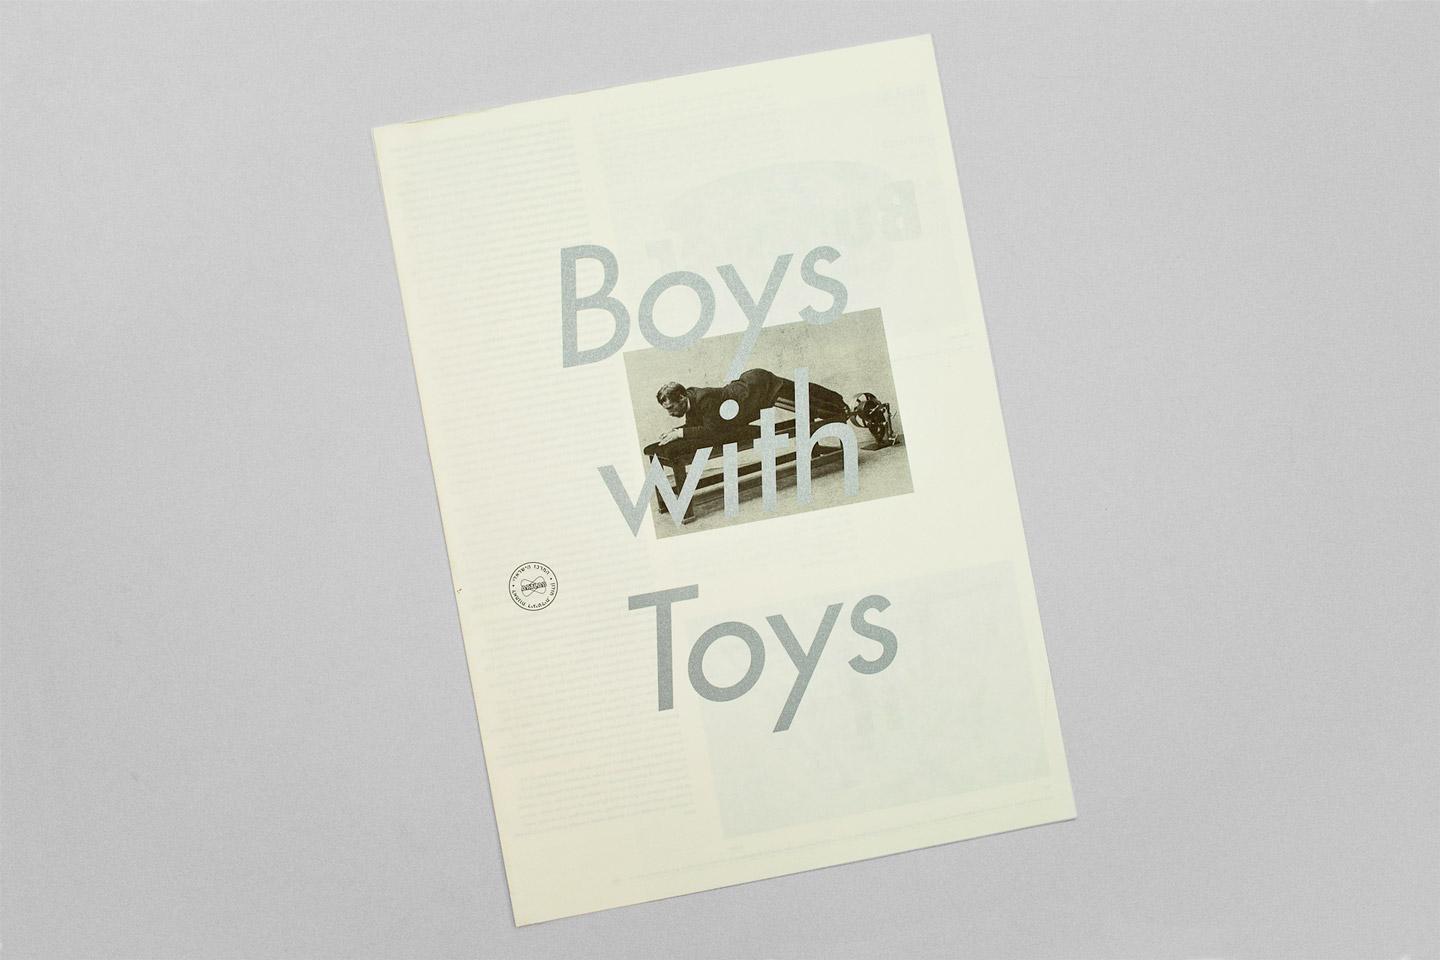 Boys with toys catalog